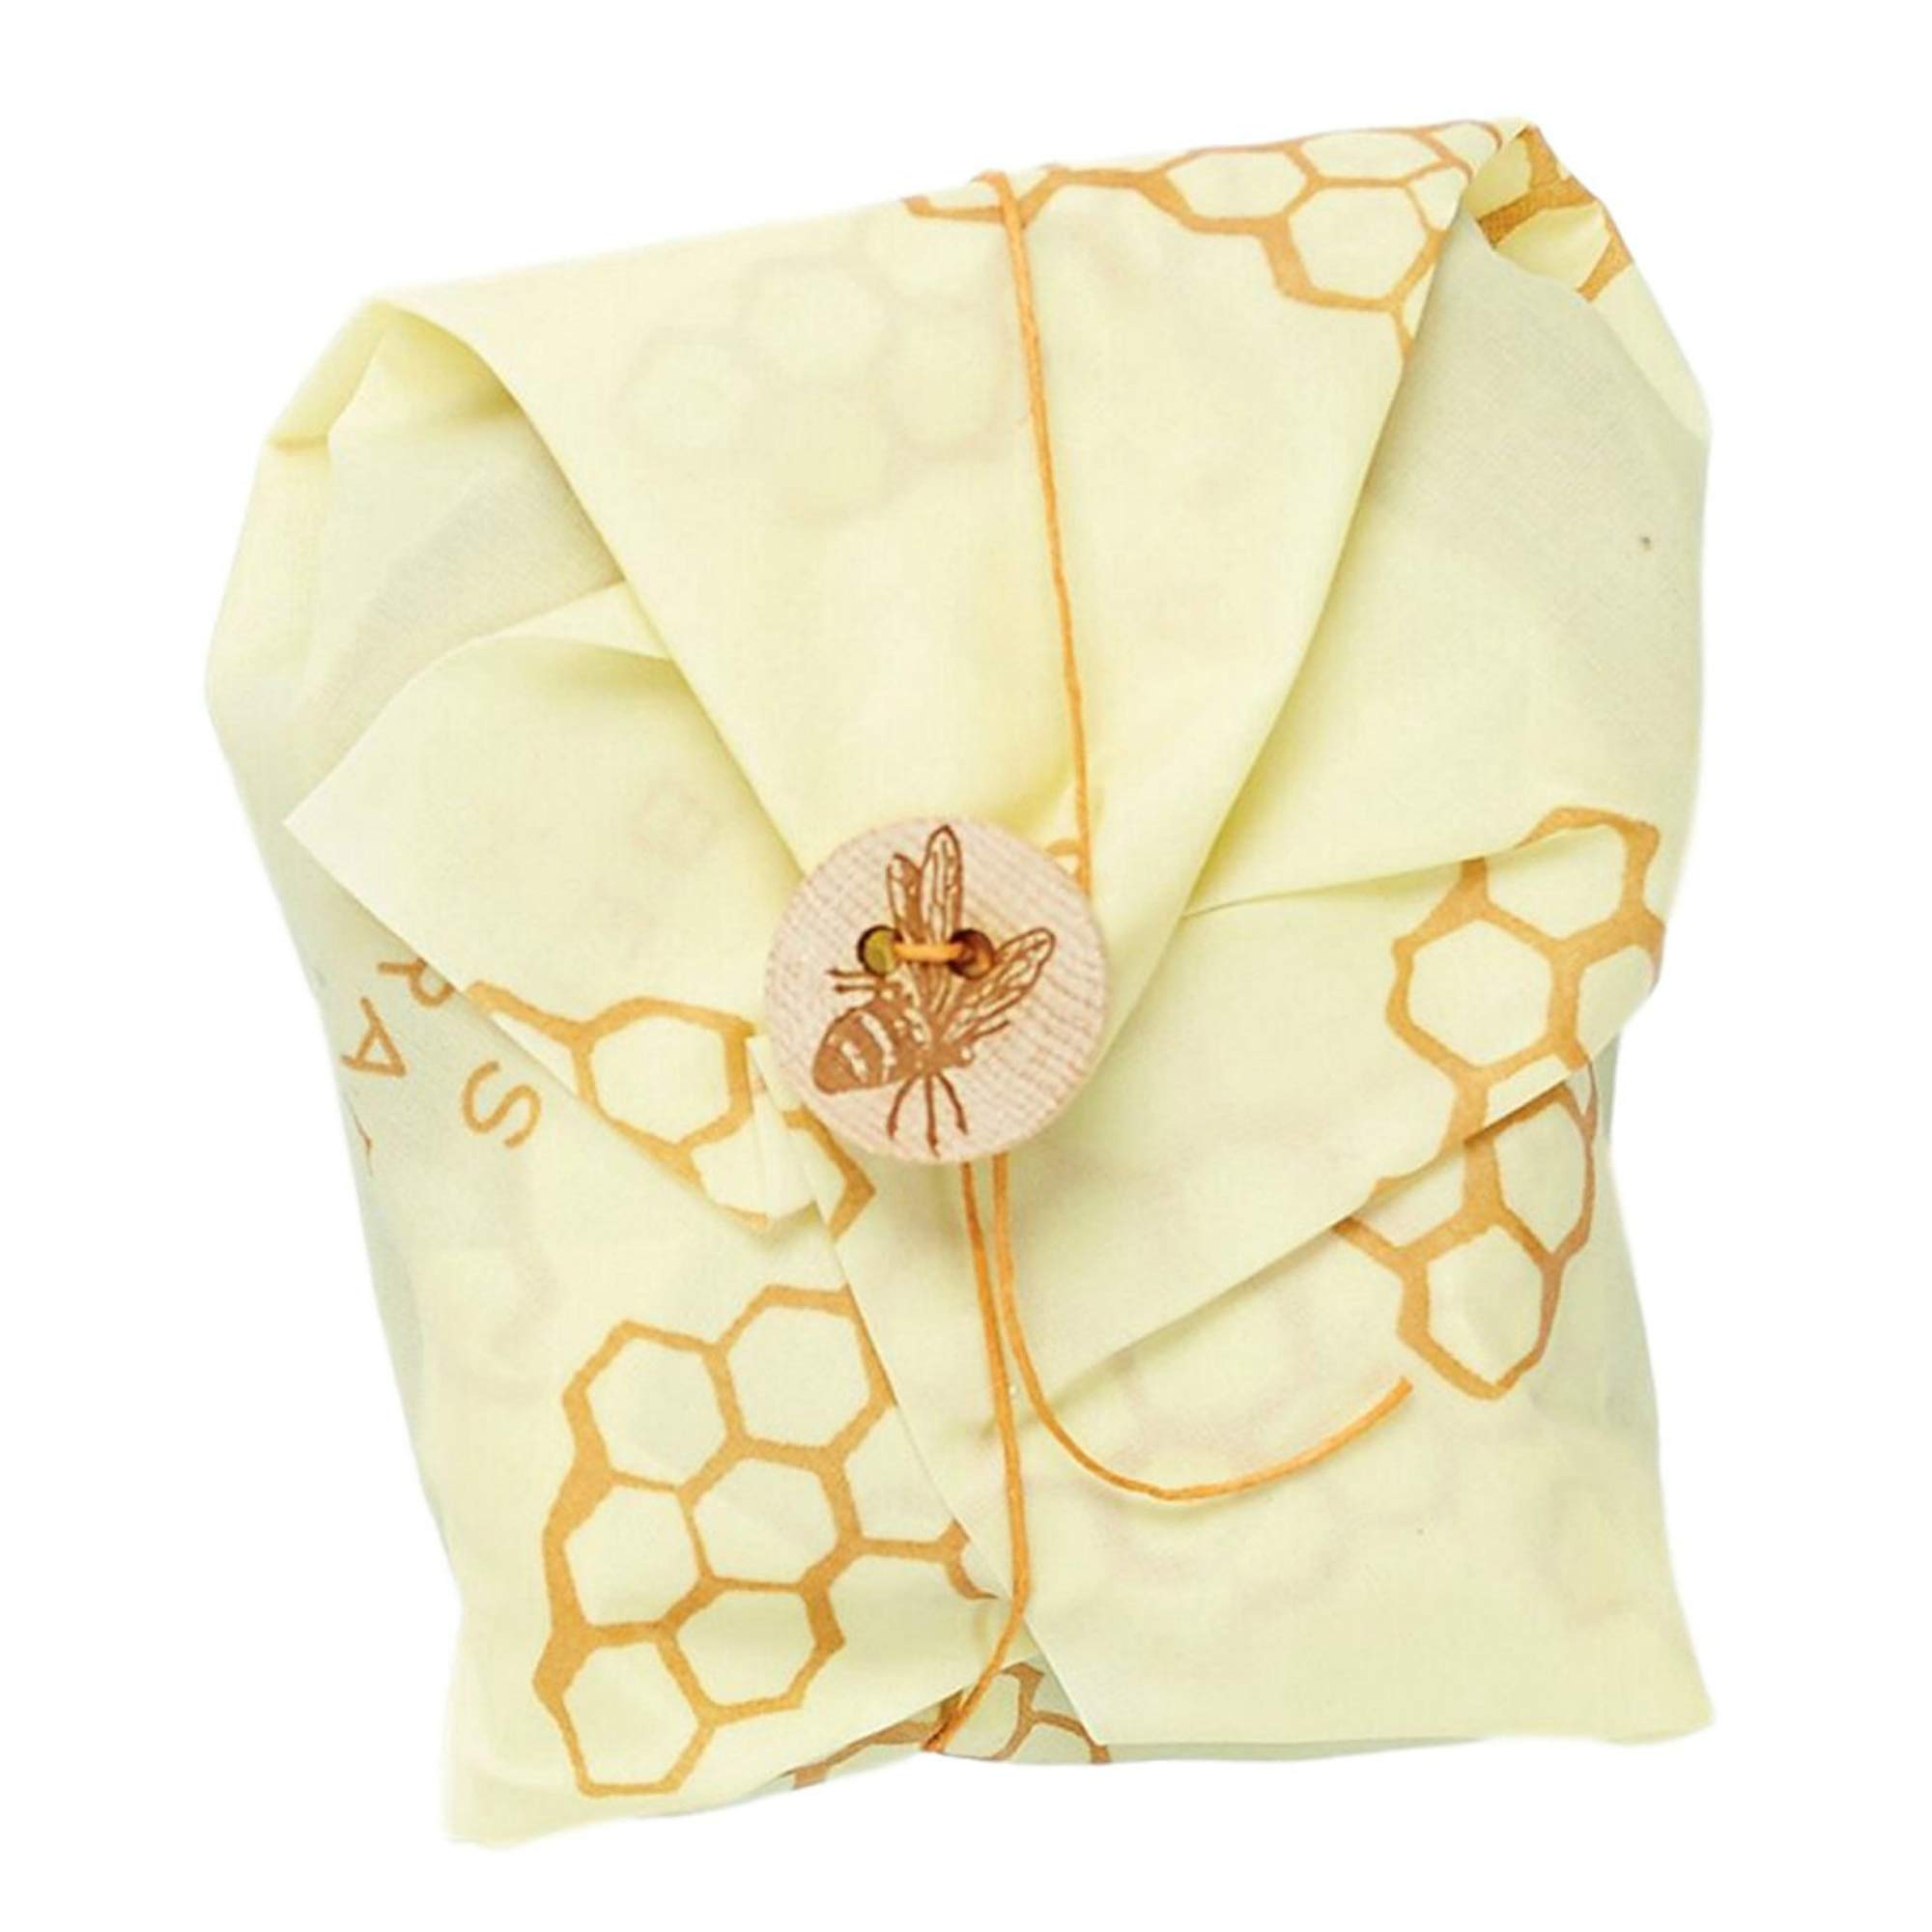 Bee's Wrap Sandwich Wrap, Eco Friendly Reusable Beeswax Food Wrap, Sustainable, Zero Waste, Plastic Free Alternative for Wrapping Sandwiches (Honeycomb Print) by Bee's Wrap